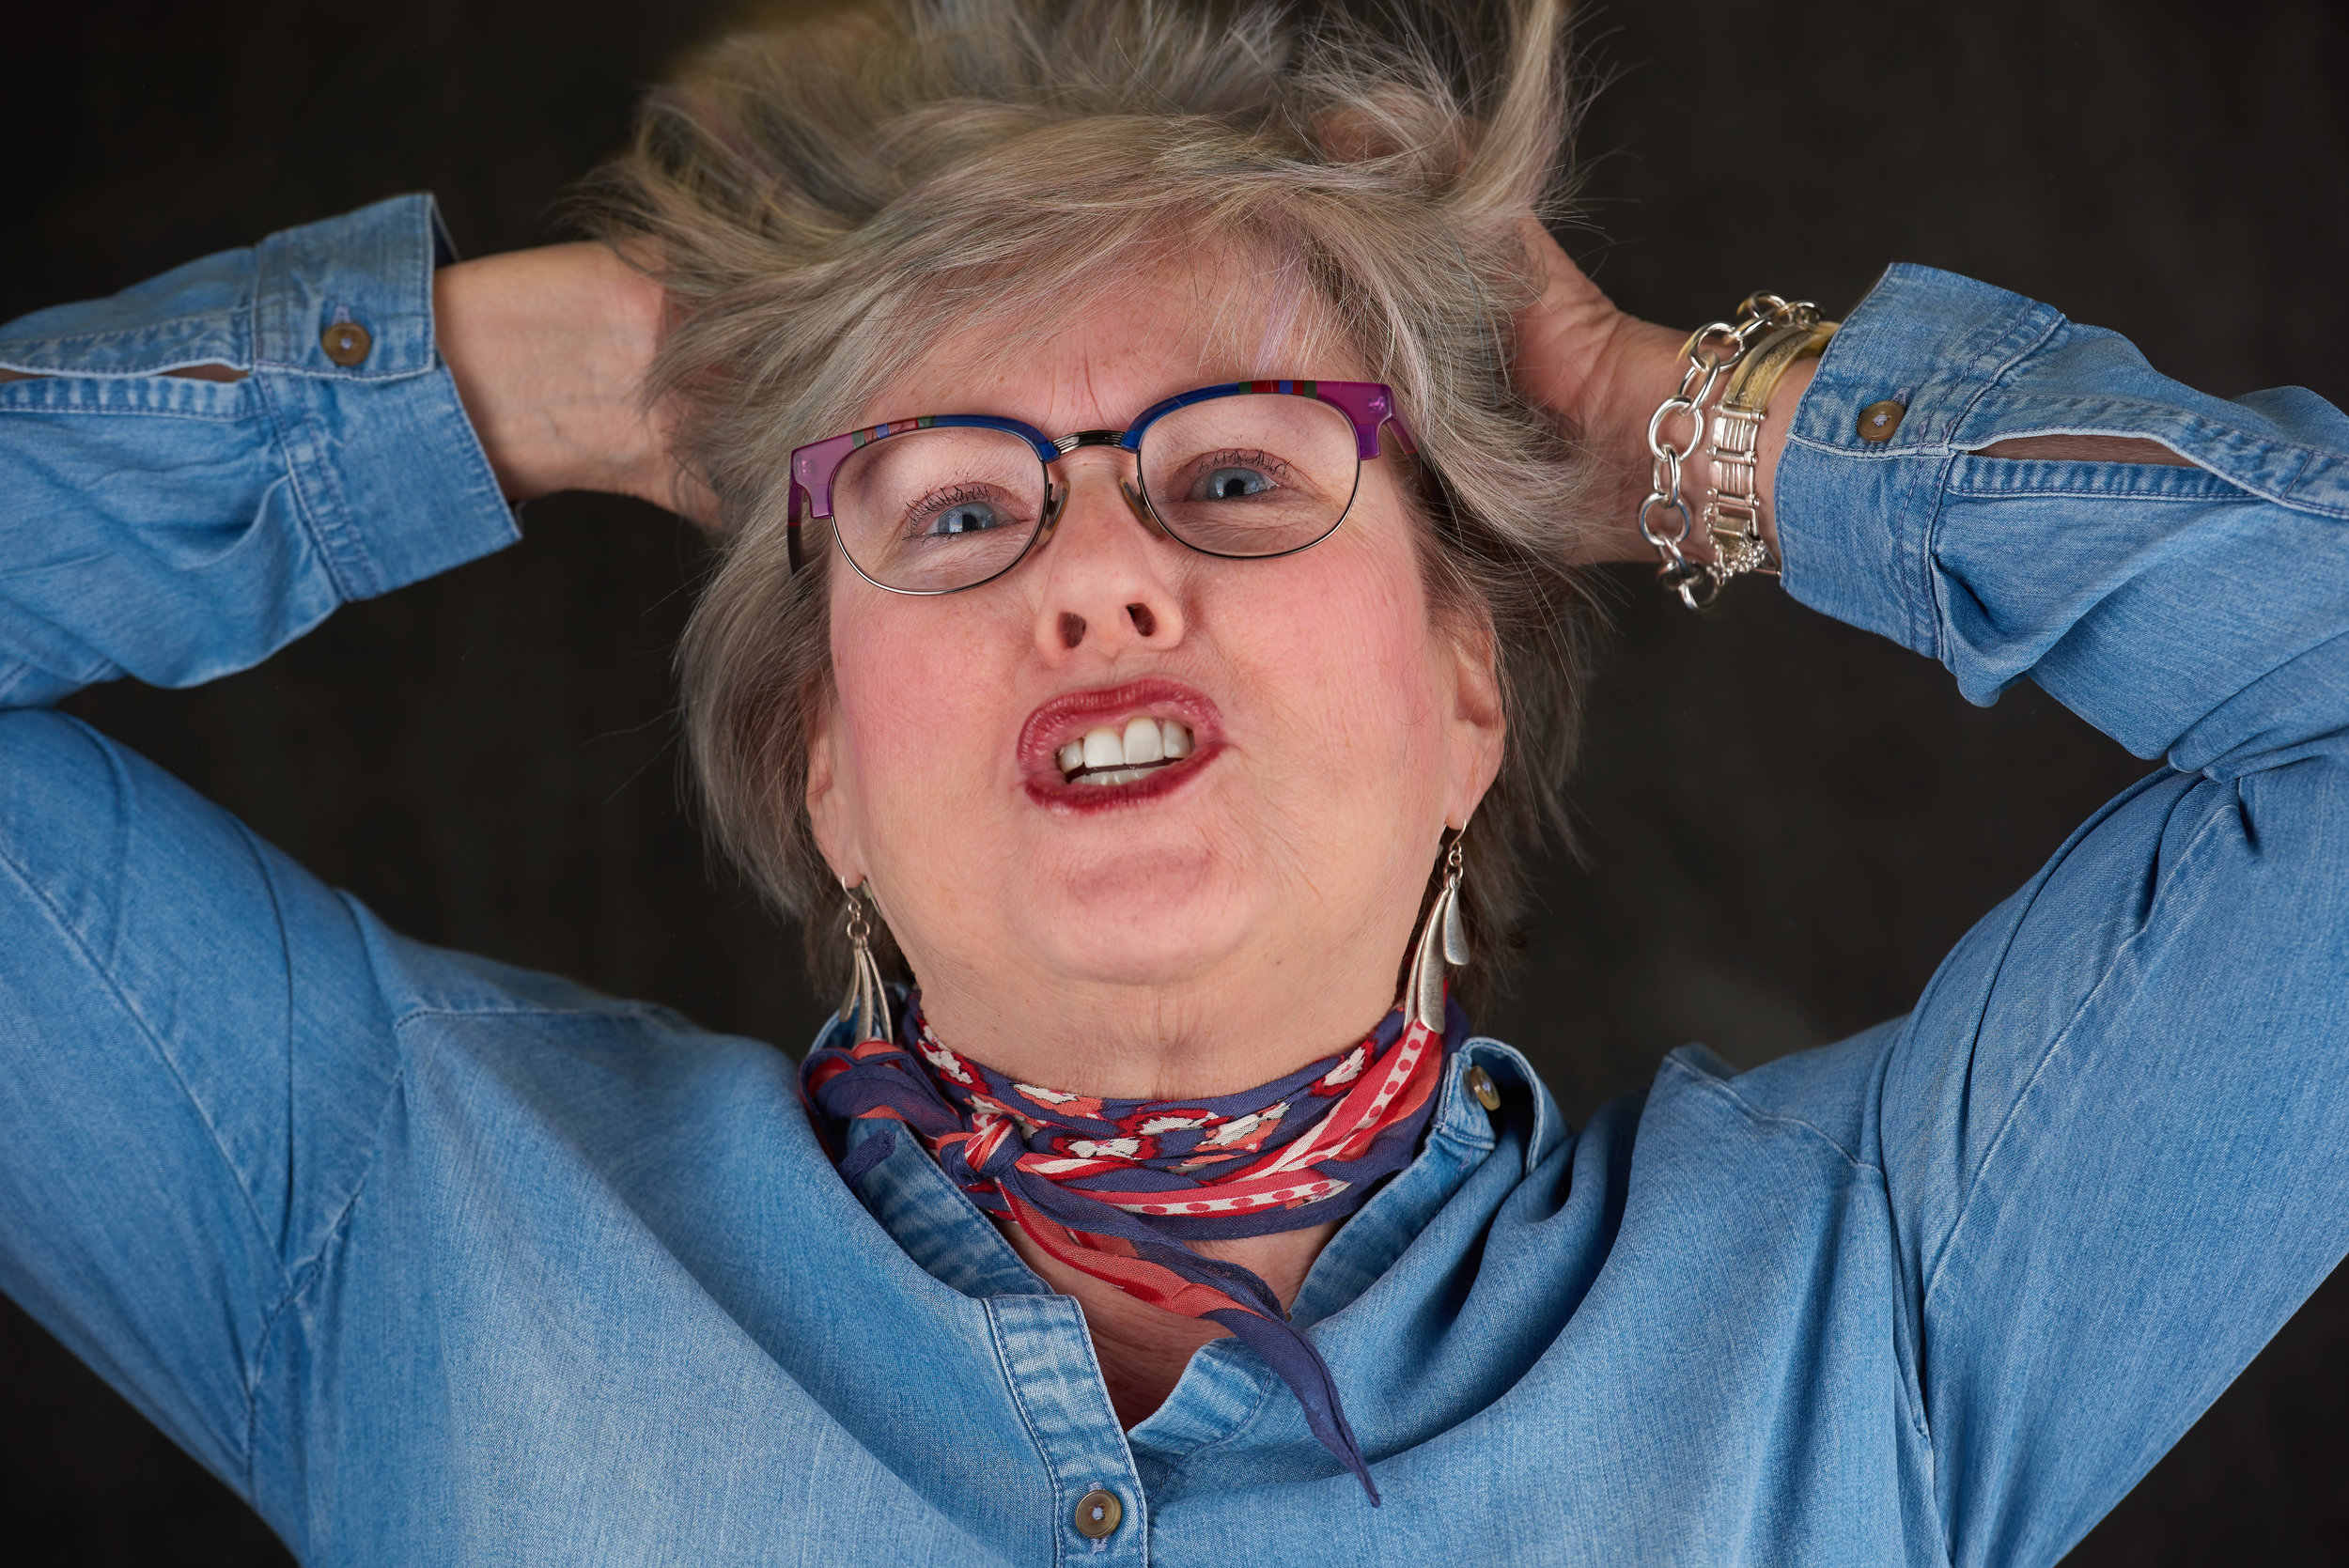 Is this how you feel when you think about having a photographer do your business portrait?